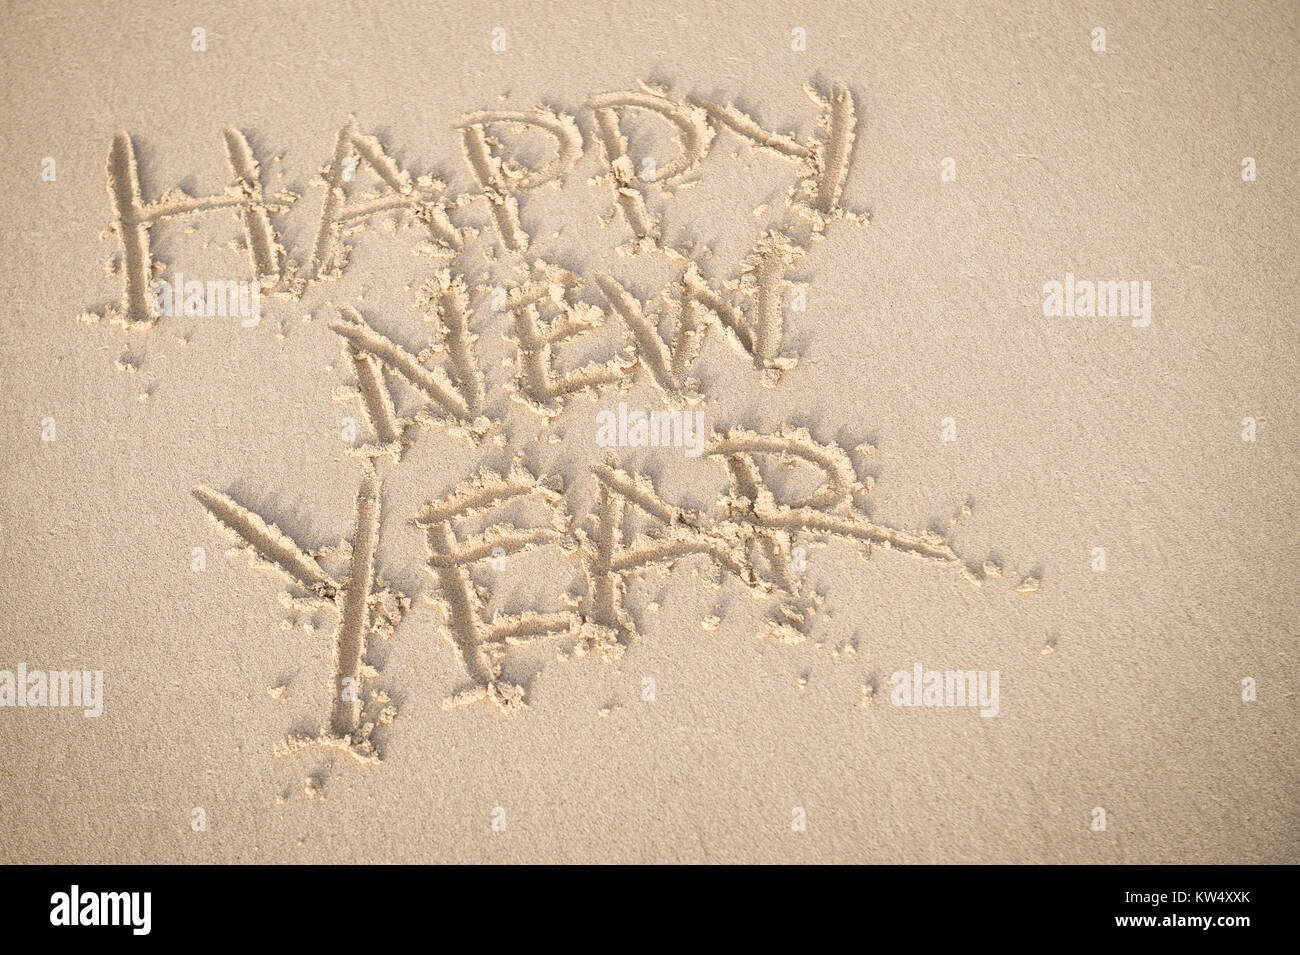 Happy New Year message handwritten on smooth sand beach - Stock Image